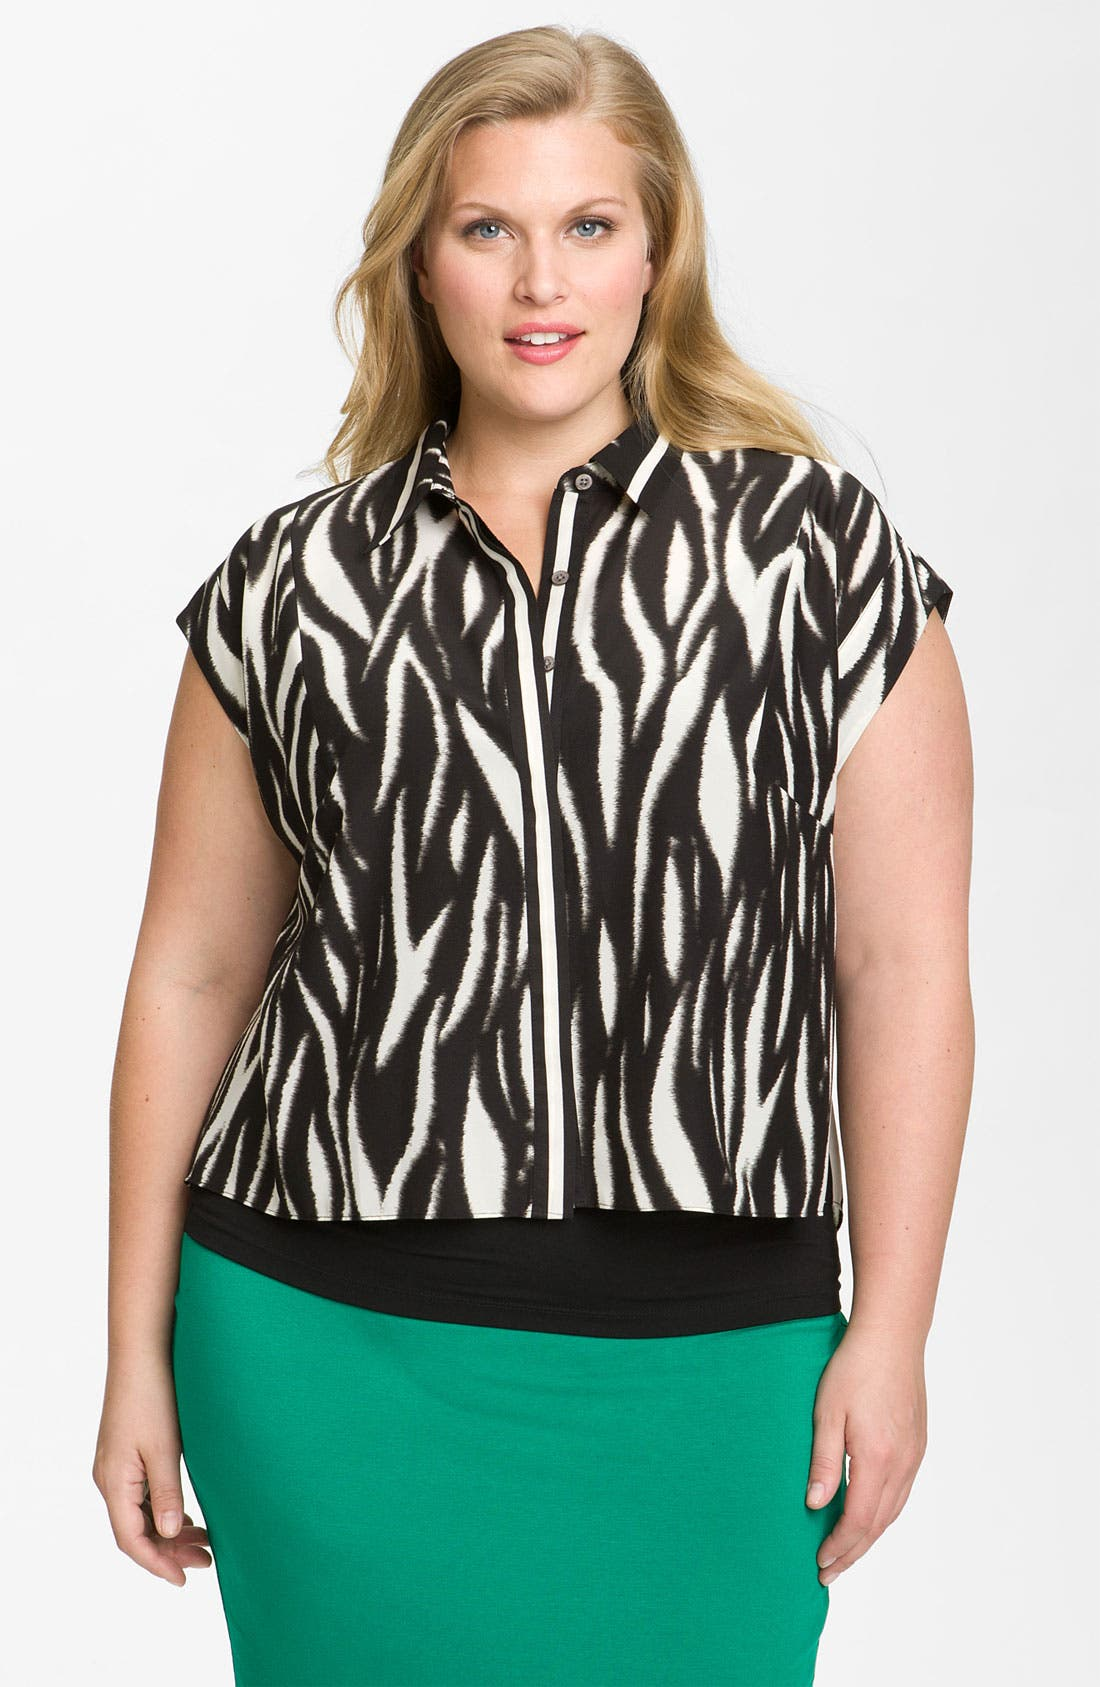 Alternate Image 1 Selected - Vince Camuto 'Ikat Tiger' Blouse (Plus)